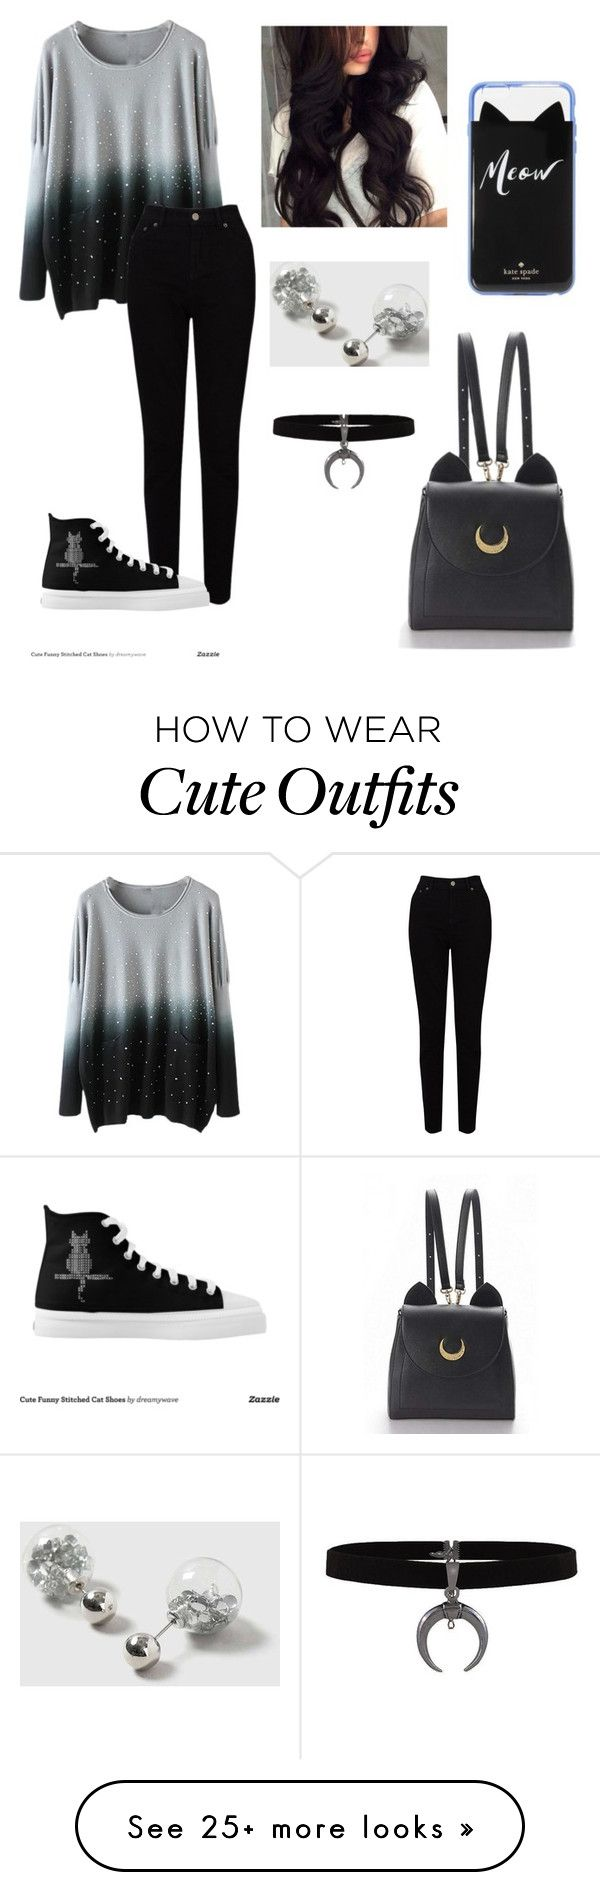 """""""School Outfit #5"""" by crynared on Polyvore featuring EAST, WithChic, Dorothy Perkins and Kate Spade"""